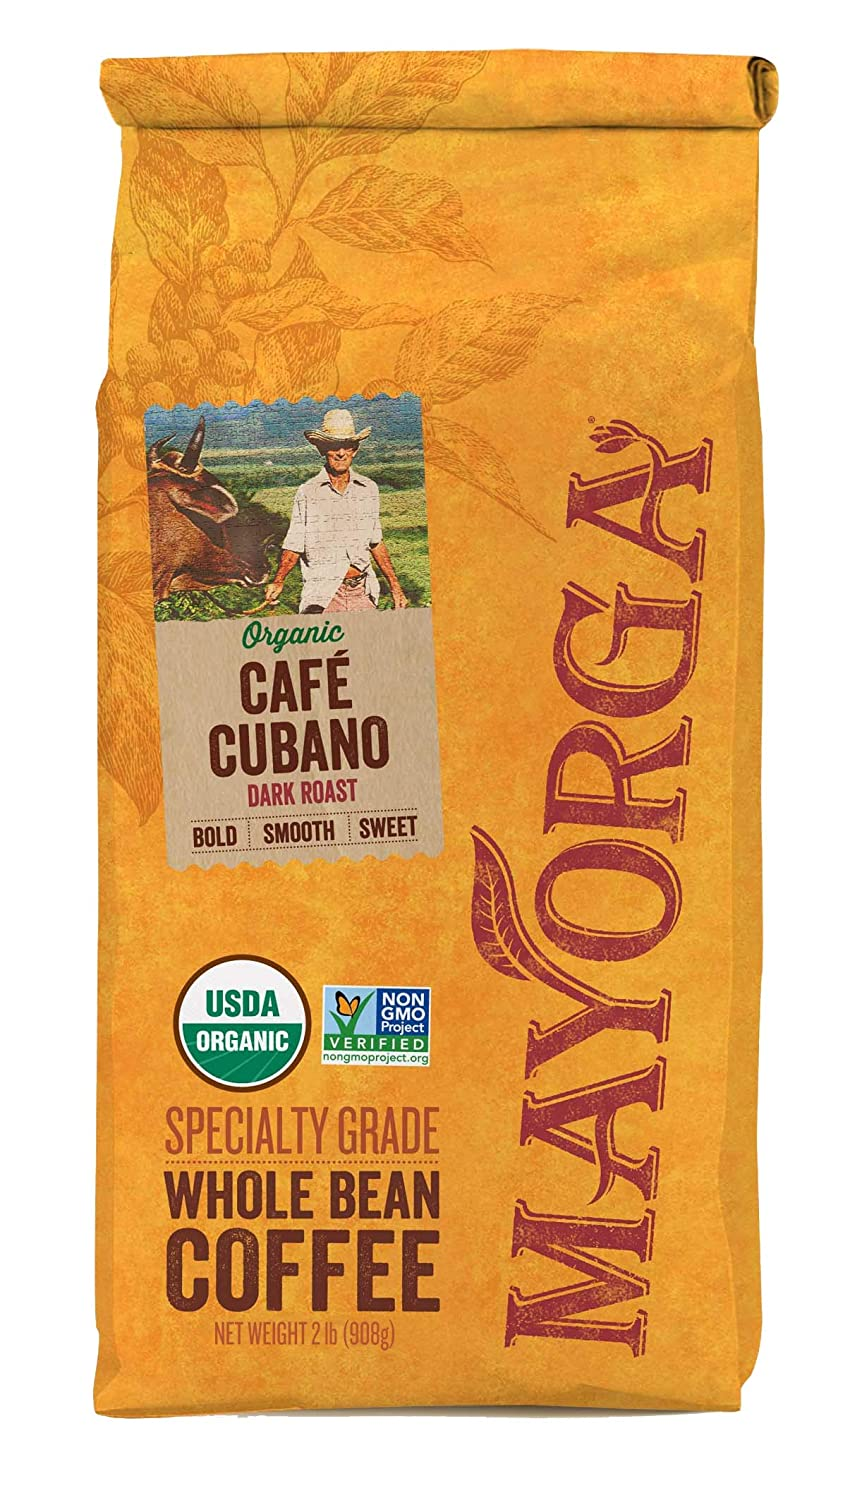 Mayorga Organics Cafe Cubano Dark Roast Whole Bean Coffee Review